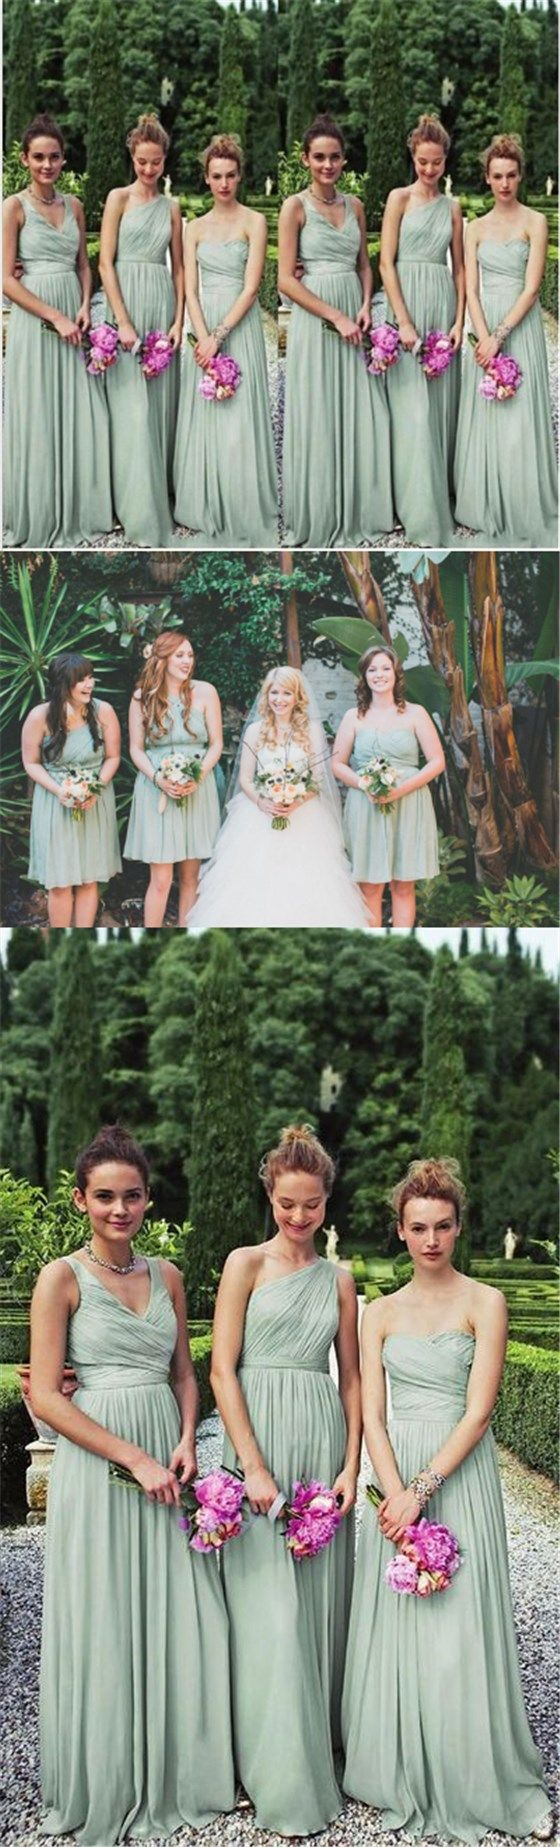 The 25 best lime green bridesmaid dresses ideas on pinterest long bridesmaid dresses lime green bridesmaid dresses mismatched bridesmaid dresses chiffon bridesmaid dresses ombrellifo Gallery